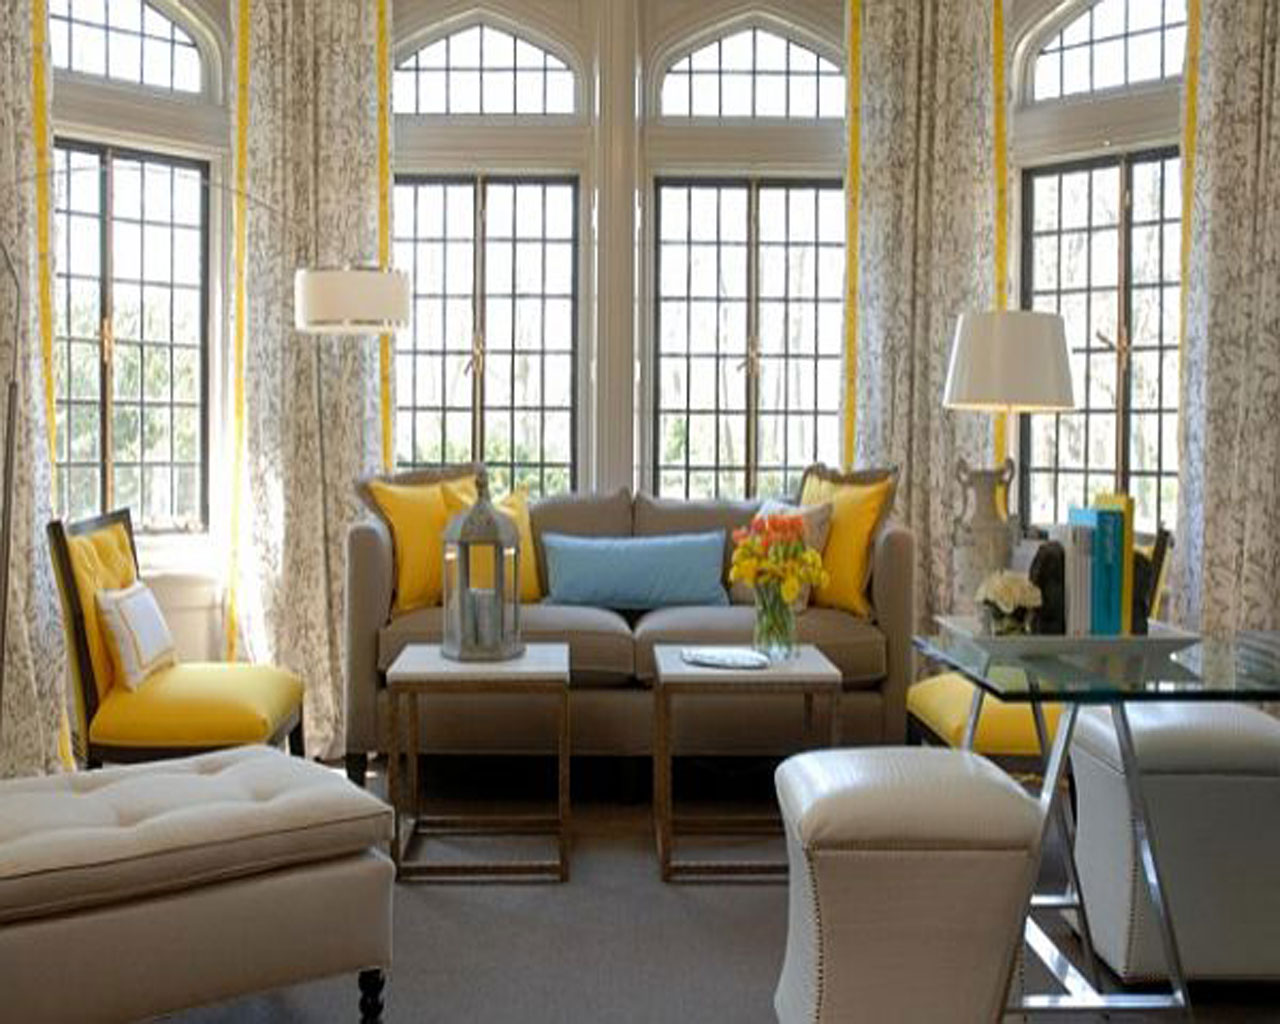 Merveilleux Lovely Style Of Living Room Themes With Yellow Accent Of Pillows